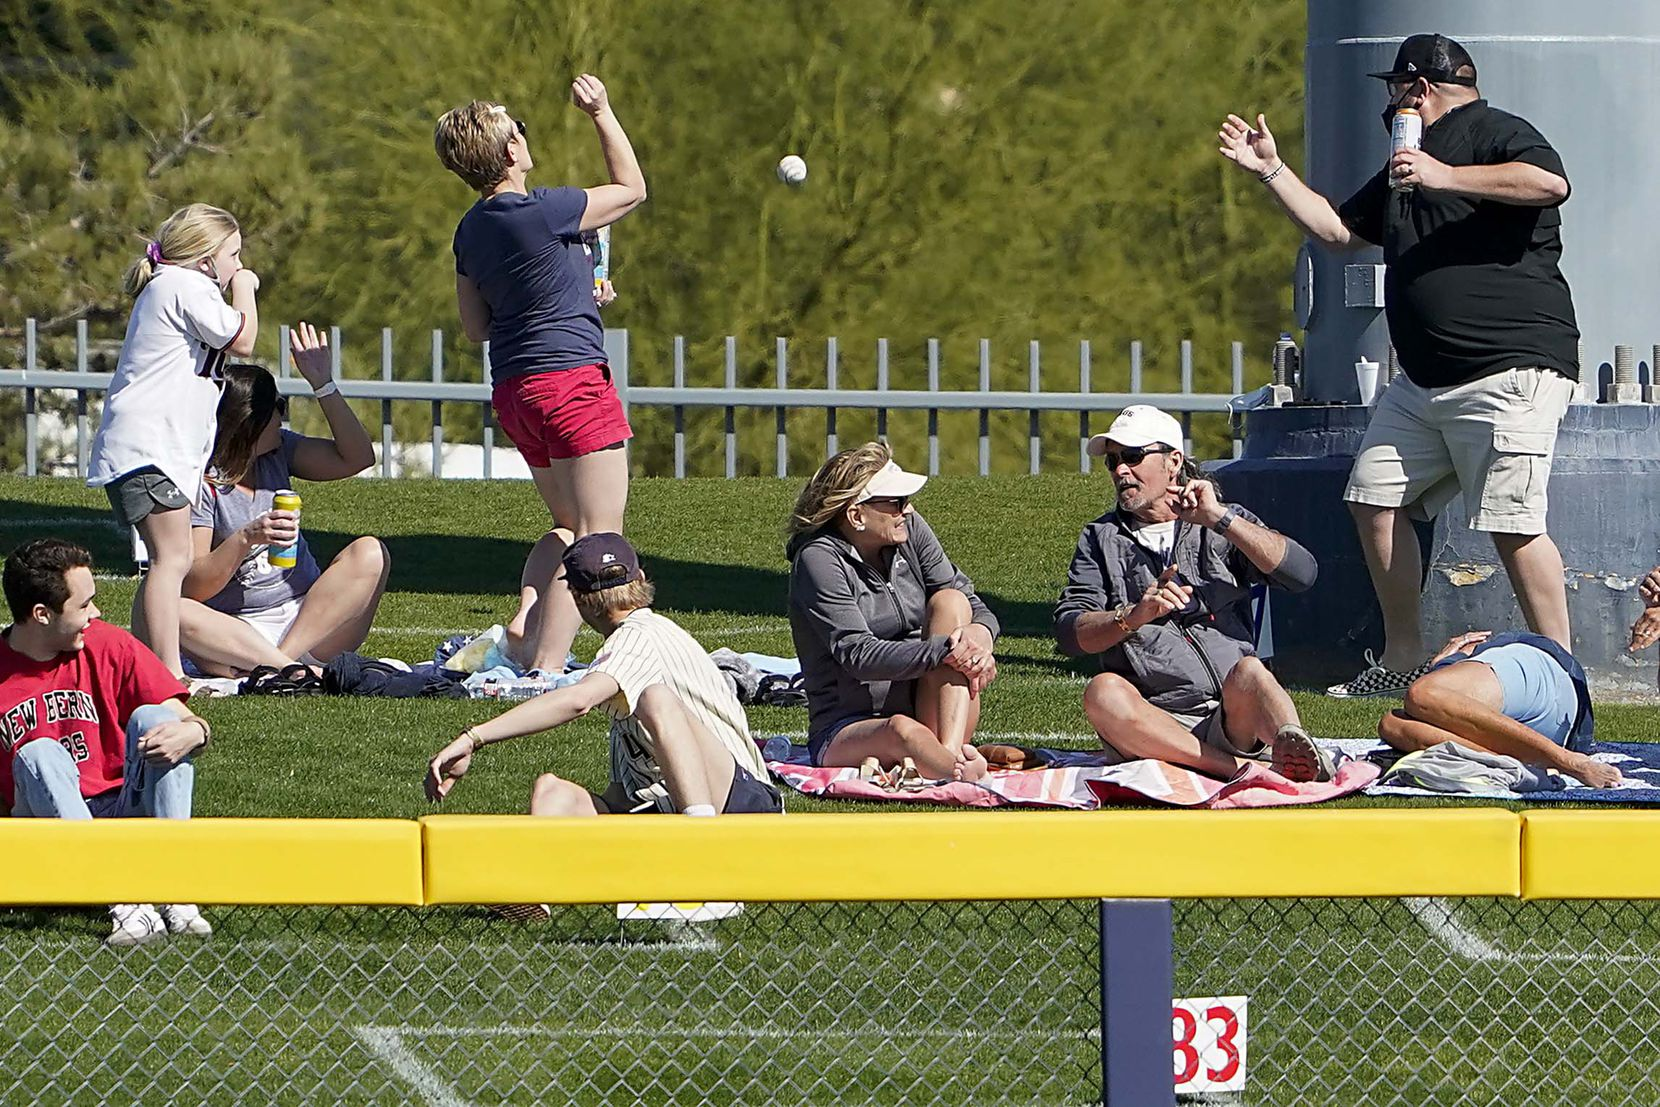 Fans reach for the ball on a solo home run by Texas Rangers outfielder during the fifth inning of a spring training game against the Seattle Mariners at Peoria Sports Complex on Wednesday, March 10, 2021, in Peoria, Ariz.